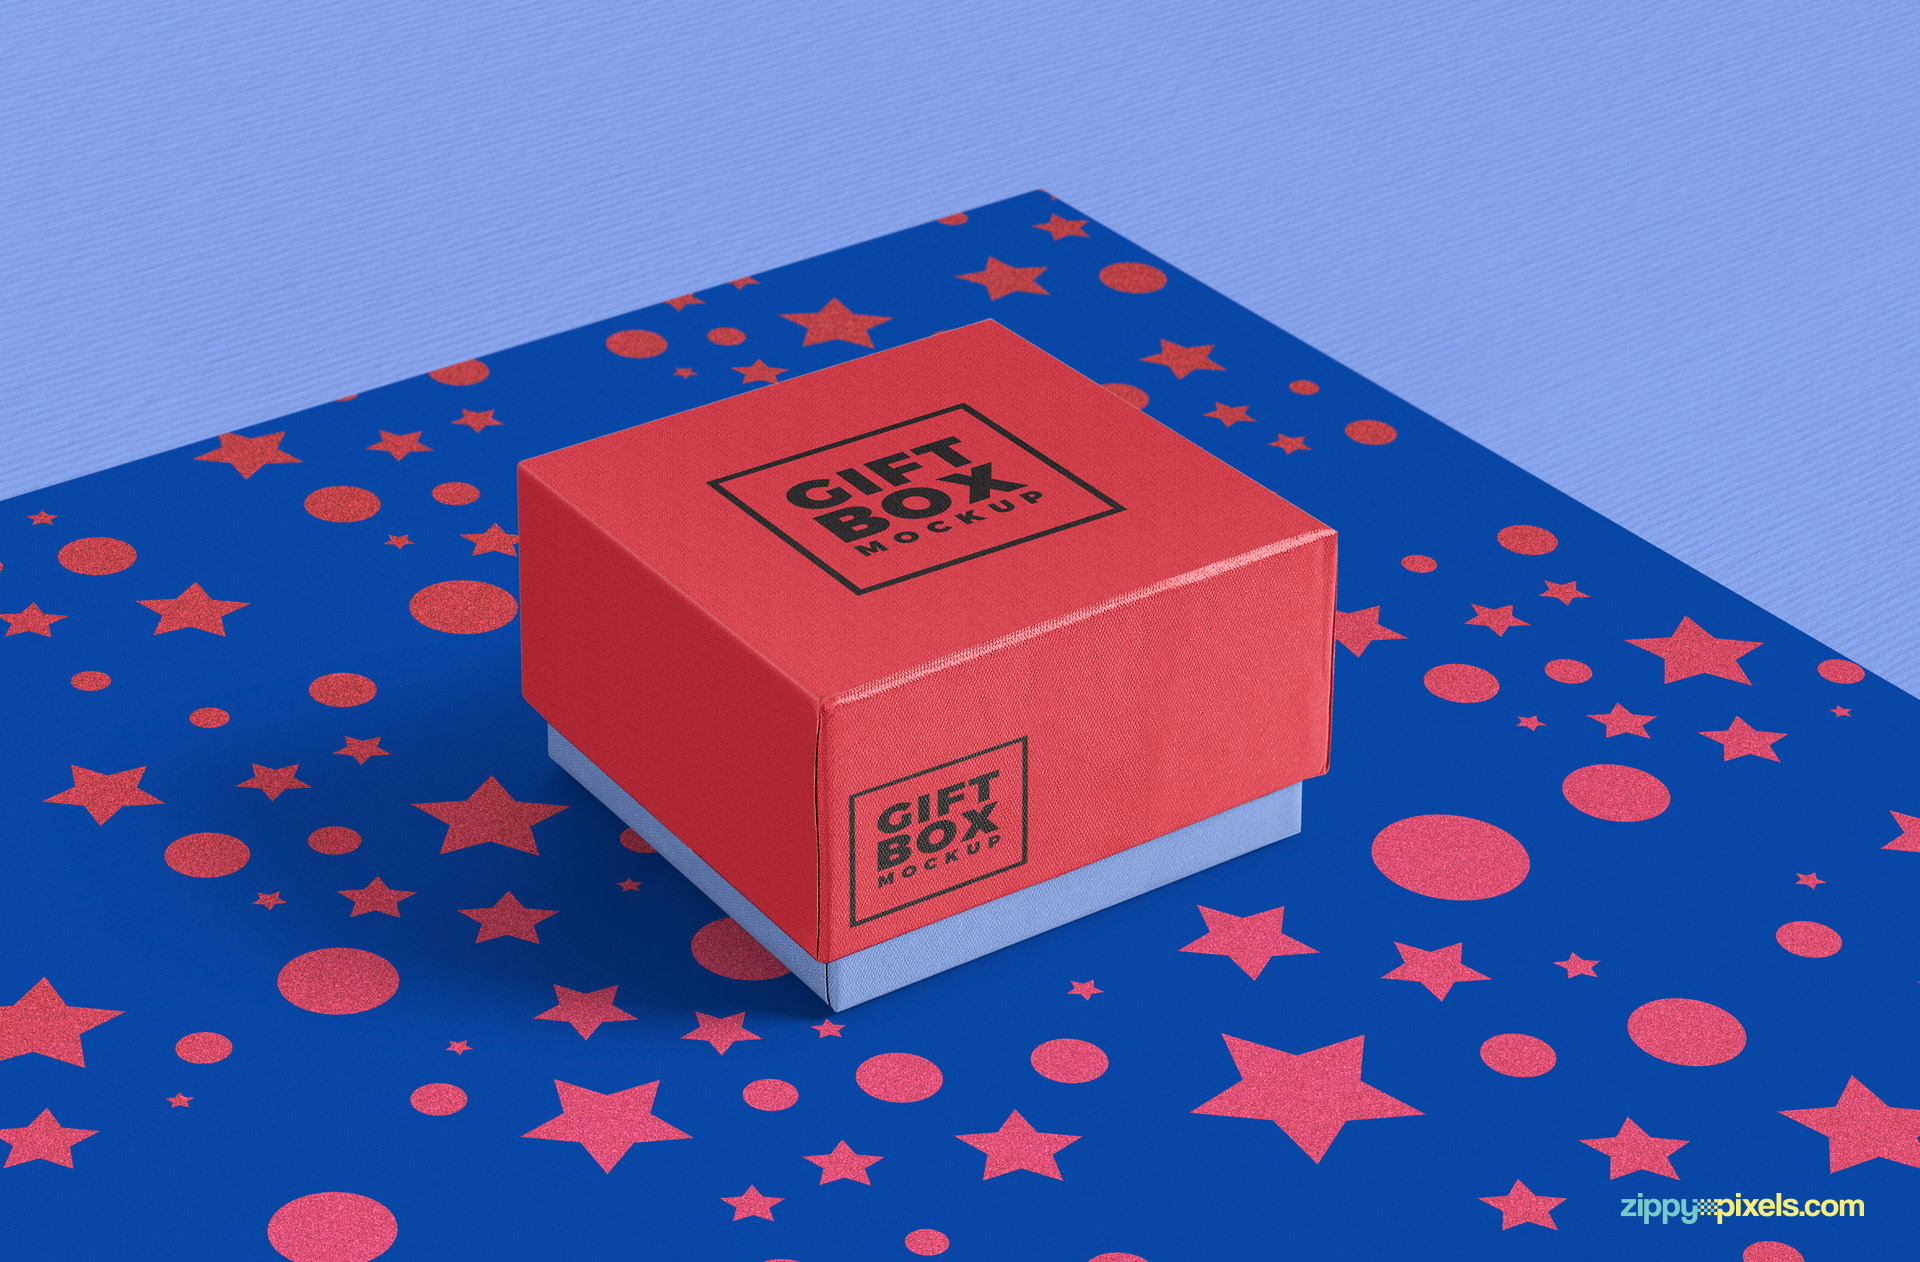 high resolution free gift box mockup psd in excellent mockup scene